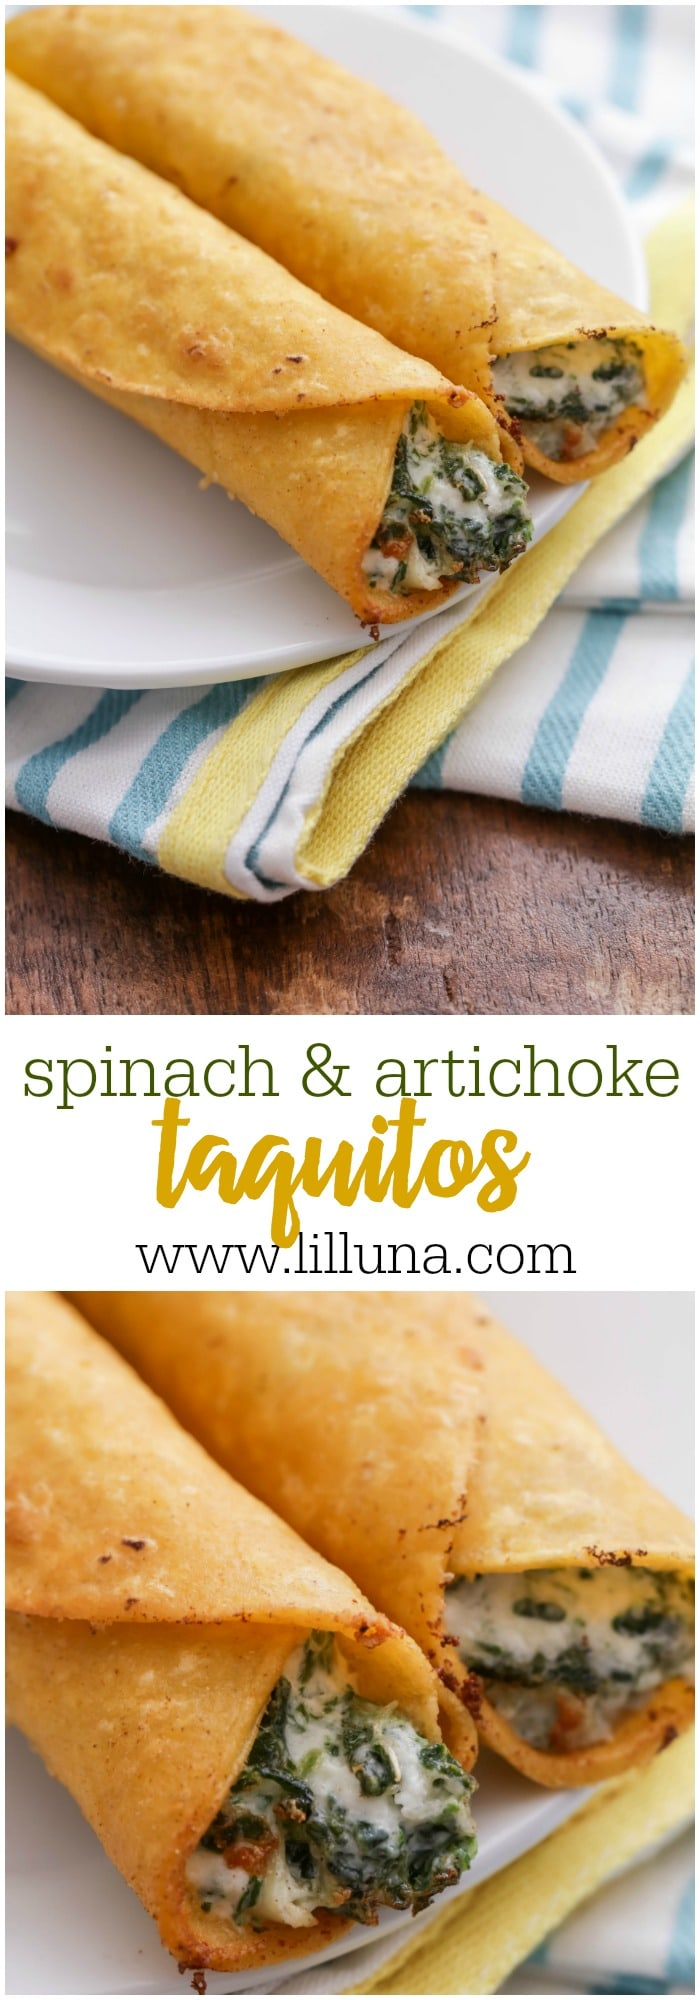 Cheesy Spinach and Artichoke Taquitos - these fried, rolled-up tacos are sure to be a hit whether served as appetizers or even for dinner!